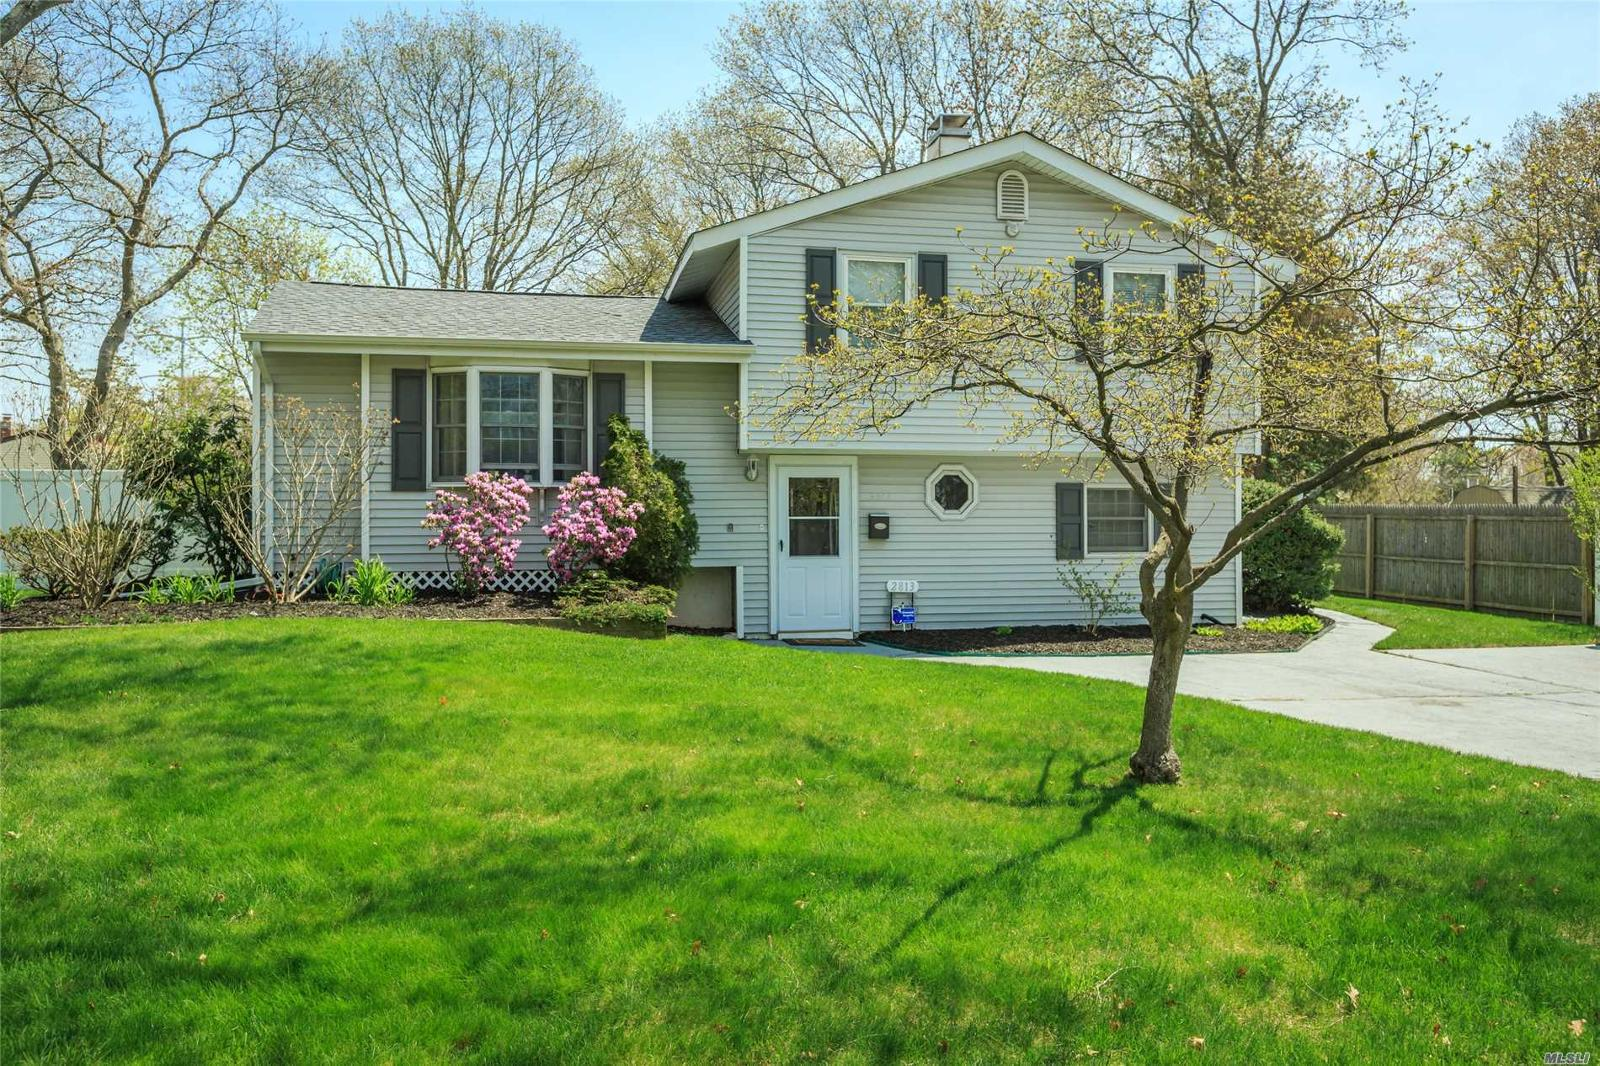 Local Real Estate: Homes for Sale — Medford, NY — Coldwell Banker